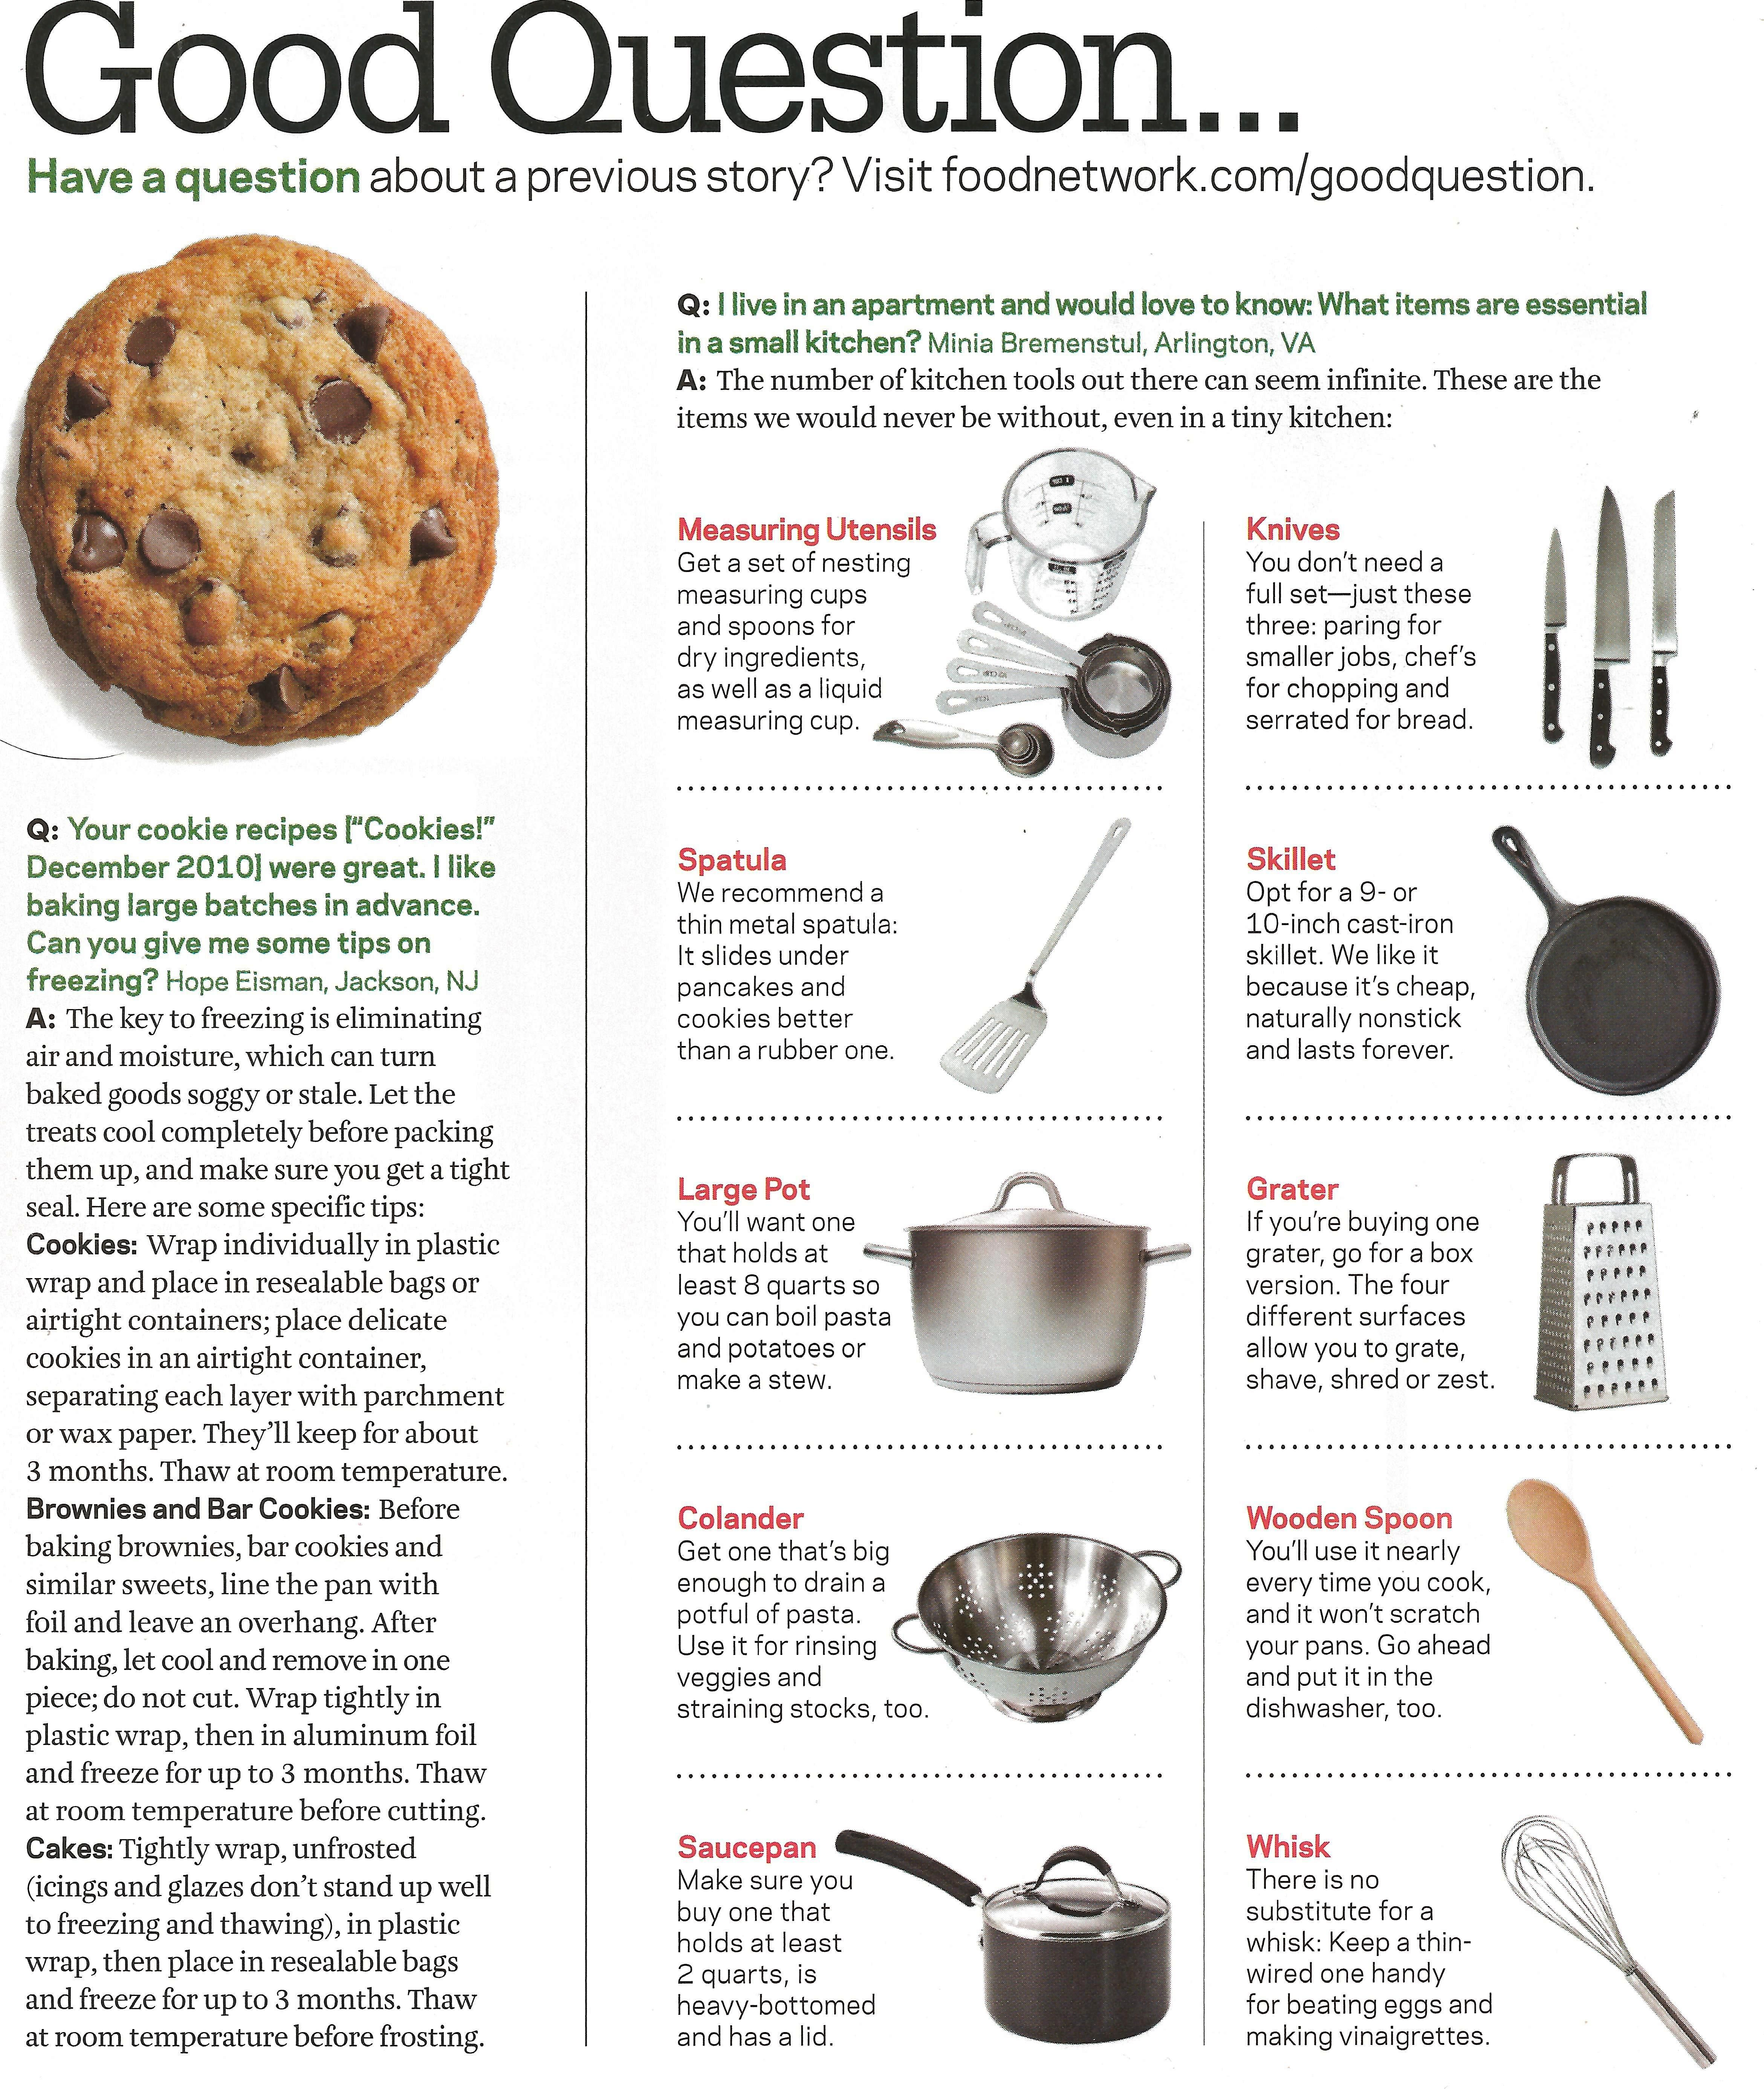 Freezing cookies, Essential items for a small kitchen   Food Network ...